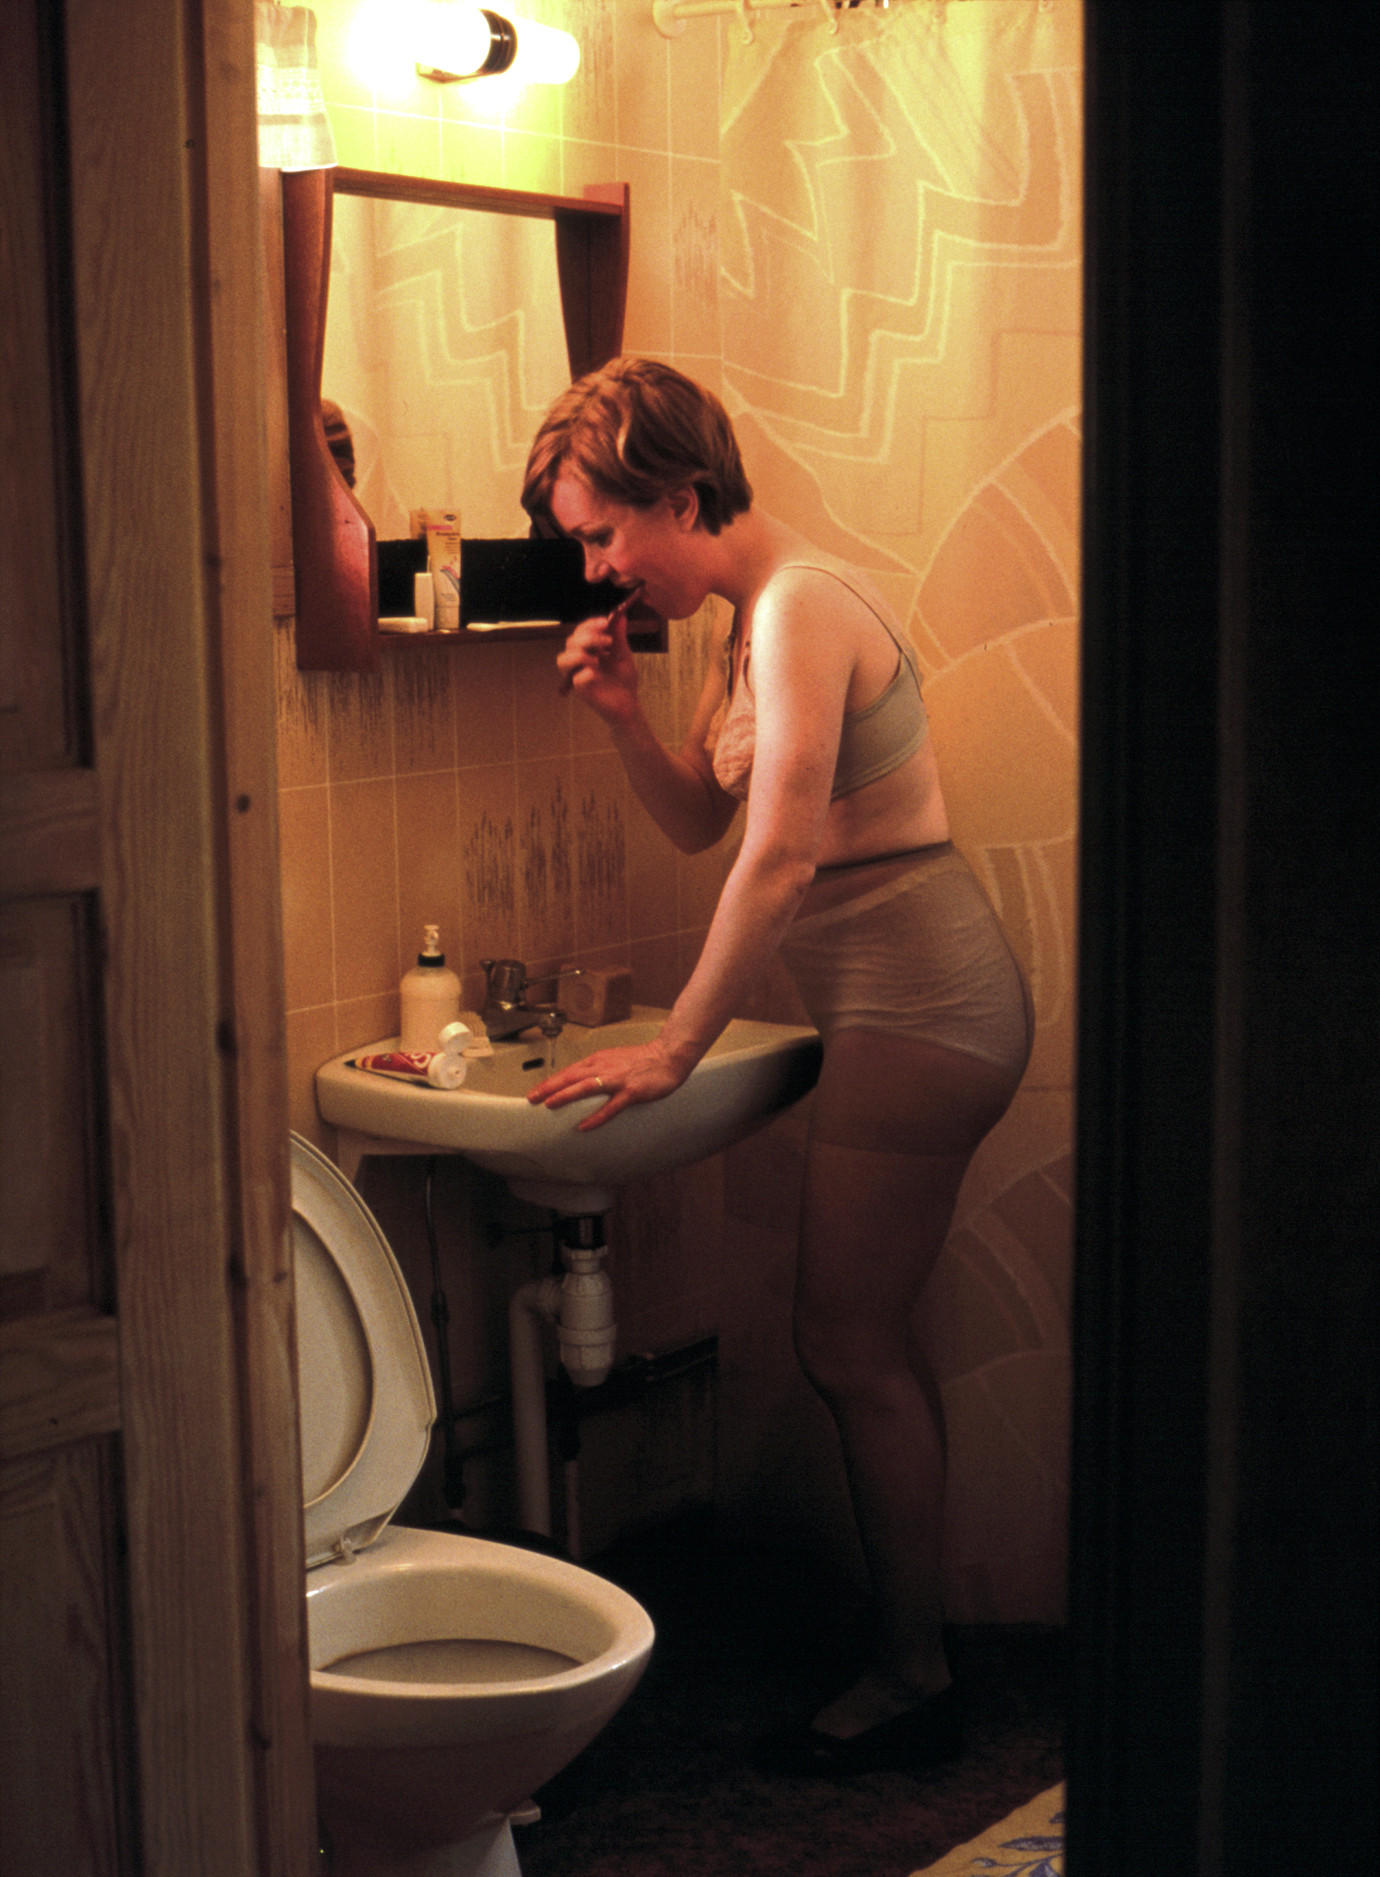 Me in My Mother's Clothes: the Bathroom 1999